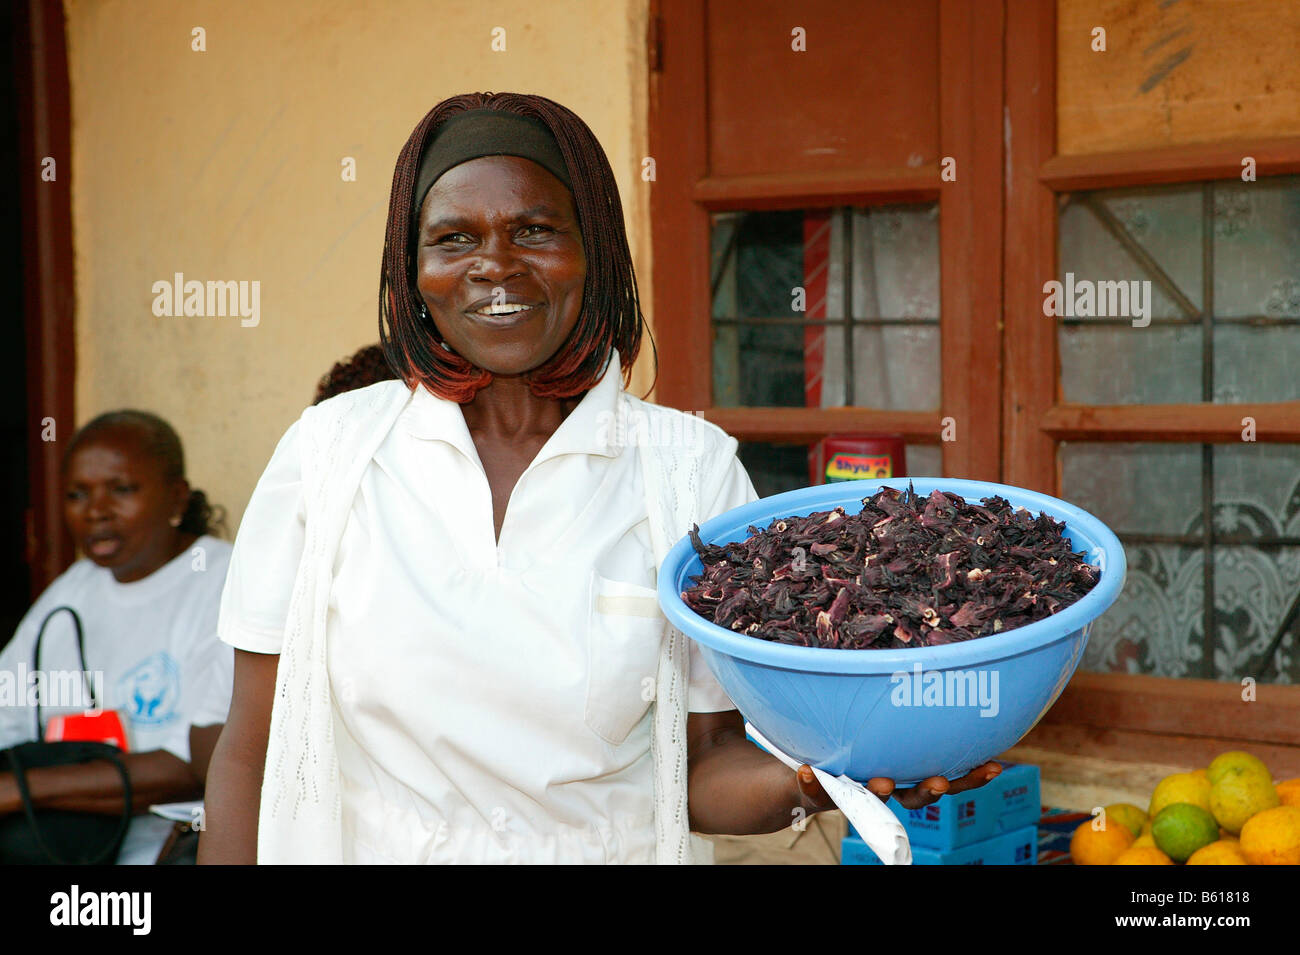 Woman holding a bowl while providing nutritional consultation, Women's Education Centre, Bamenda, Cameroon, - Stock Image